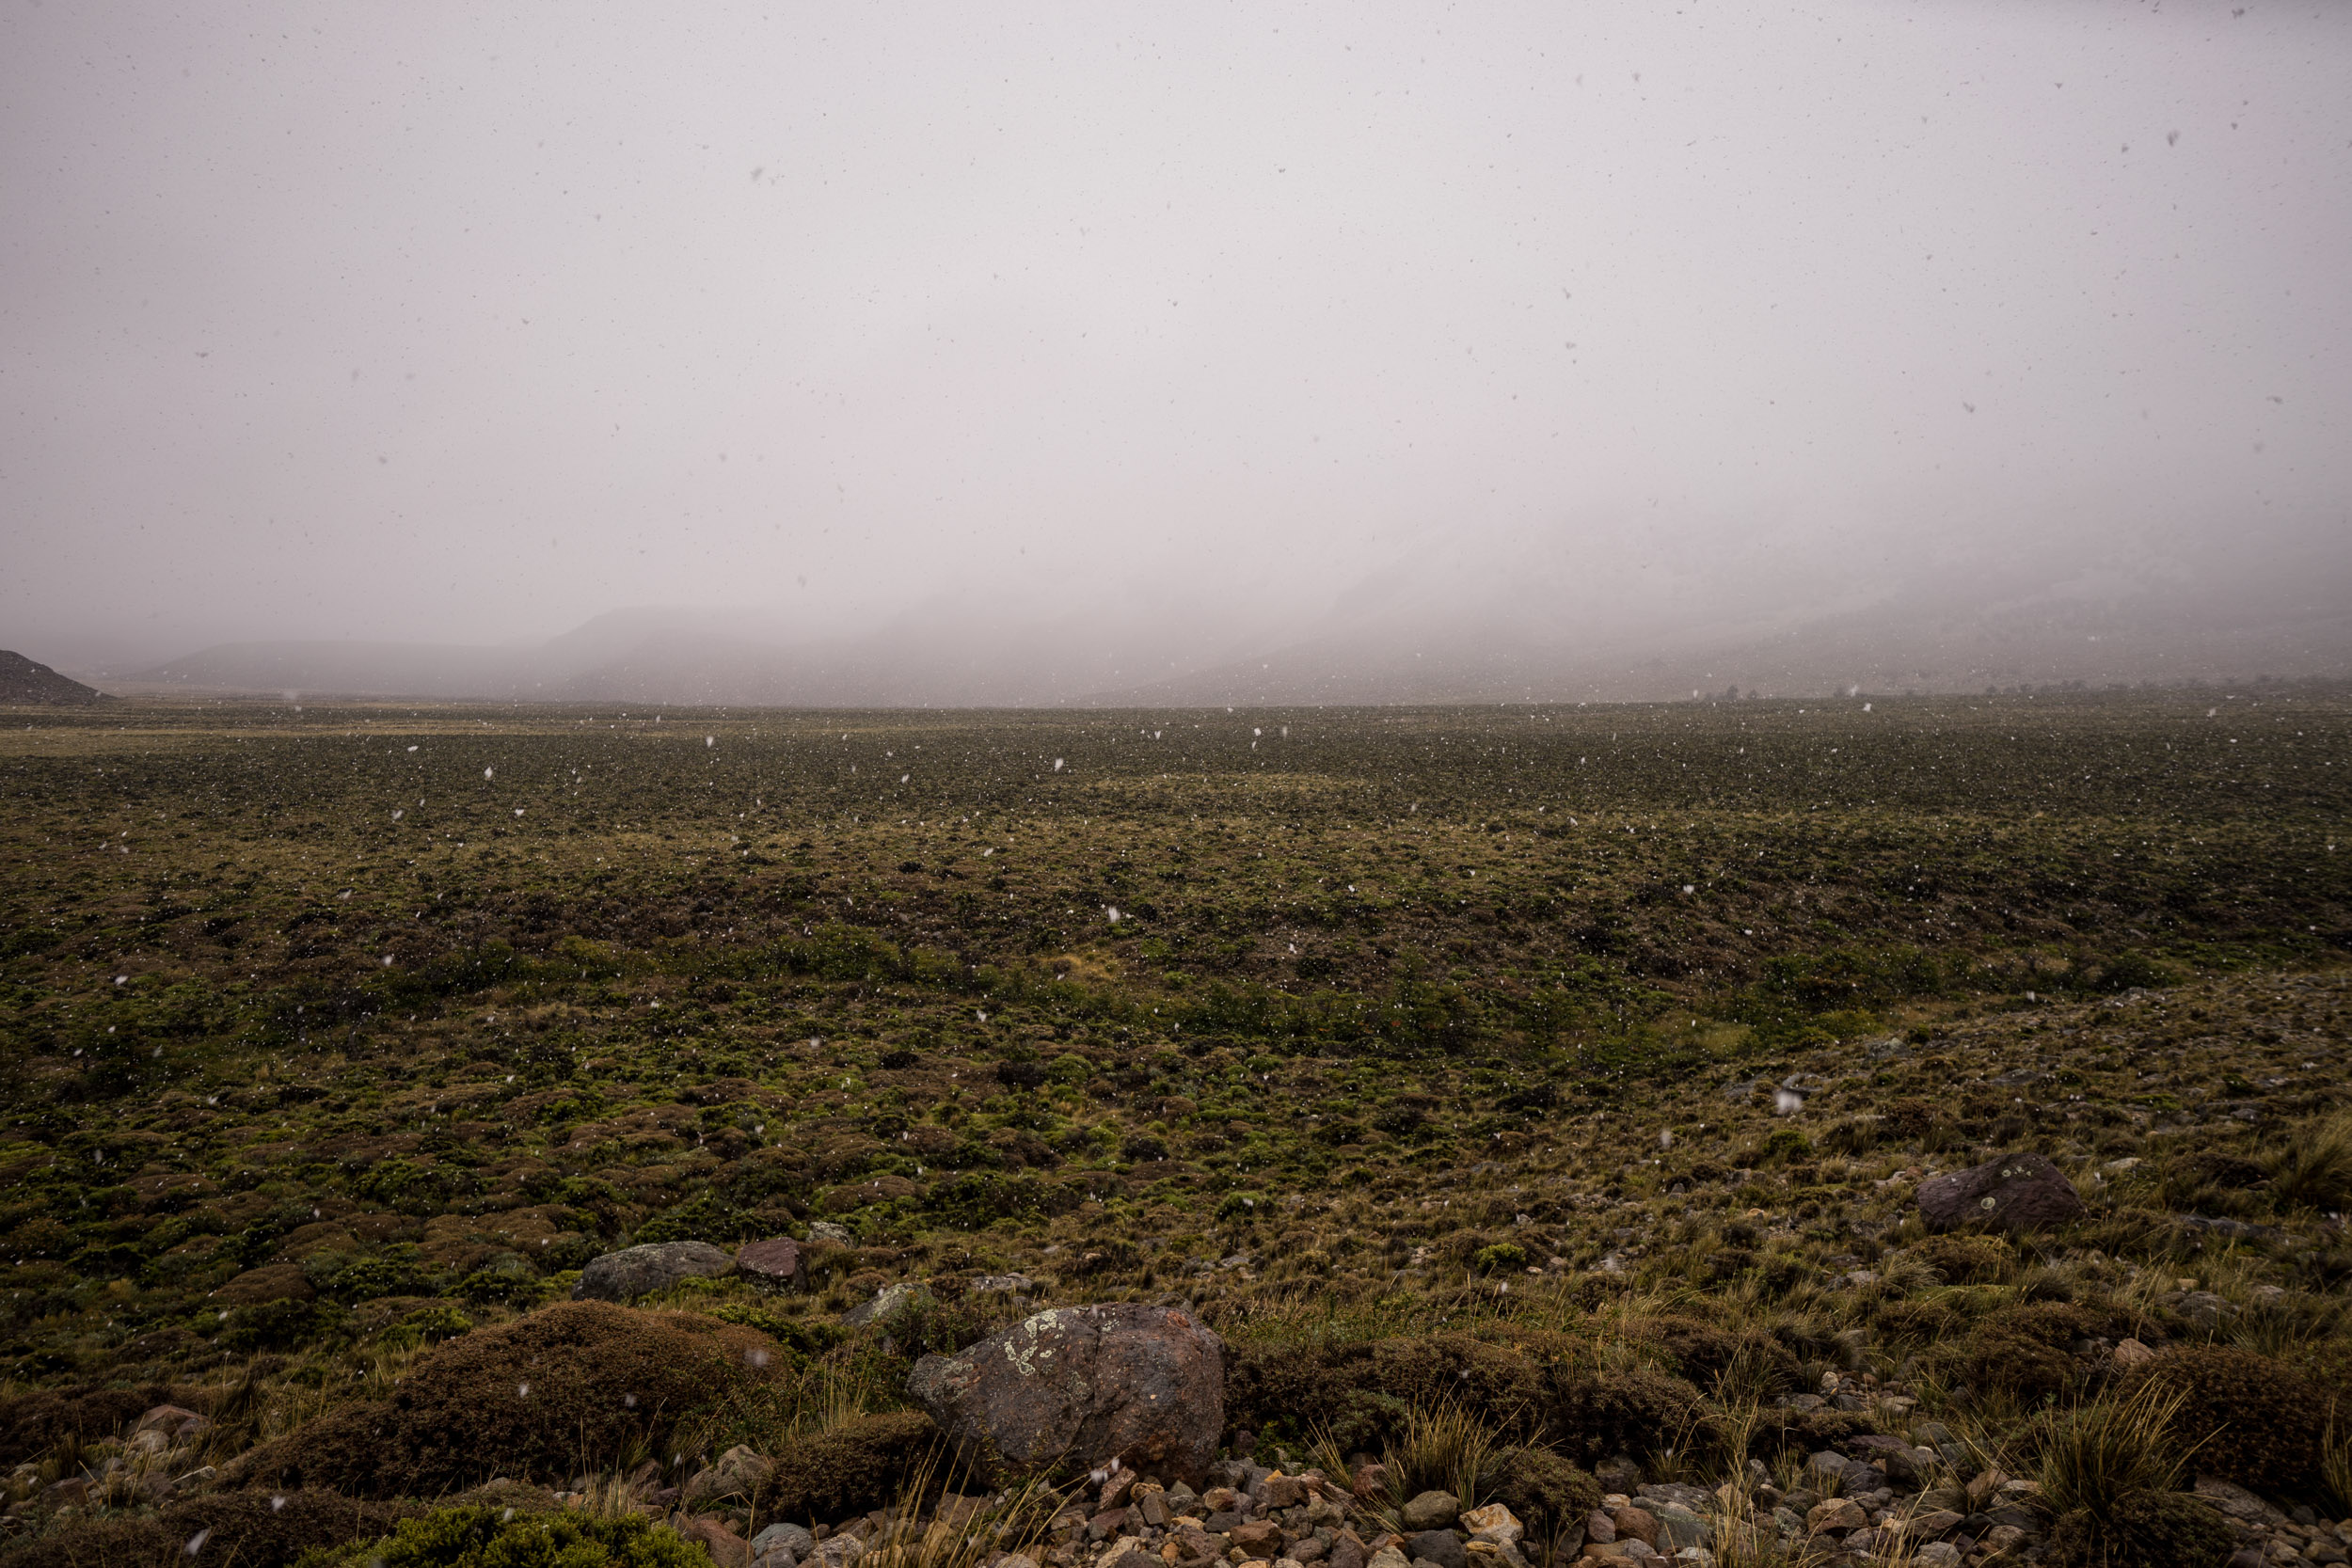 - The first snowfall of the season contrasting with the beautiful, green vegetation of the steppe at the isolated Ñandú outpost (photo by Andreea Lotak)